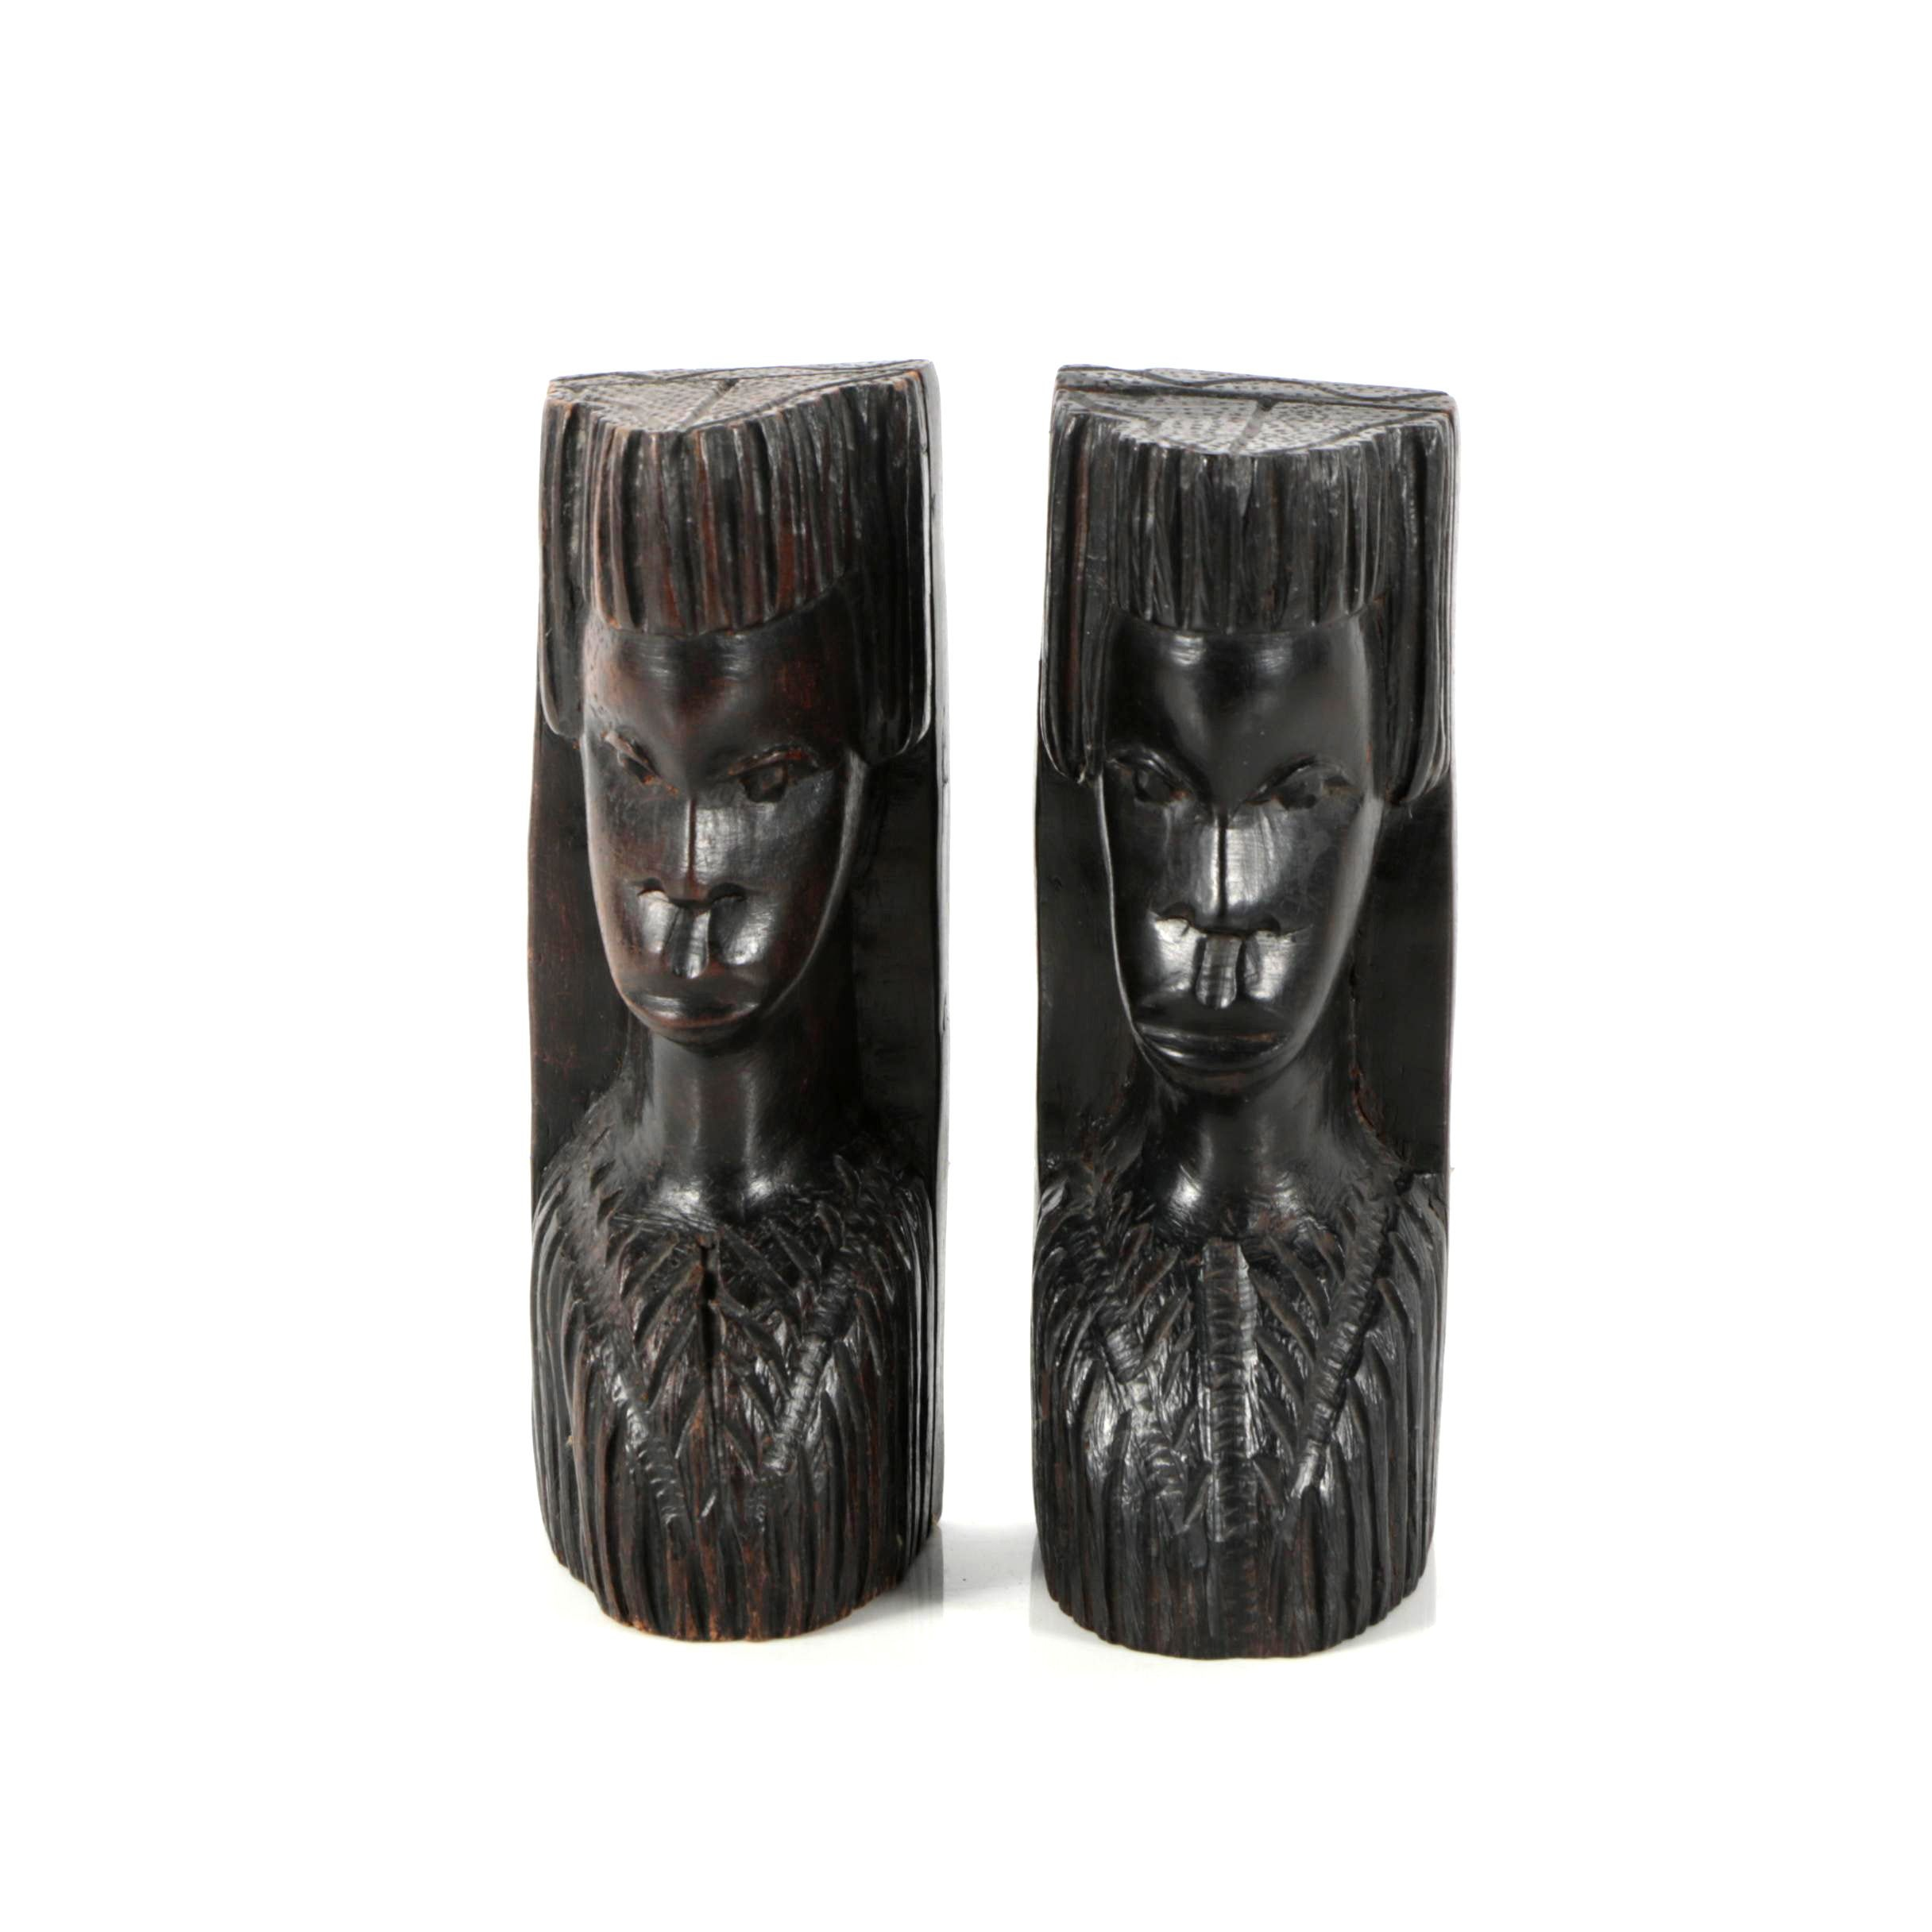 East African Wooden Bookends